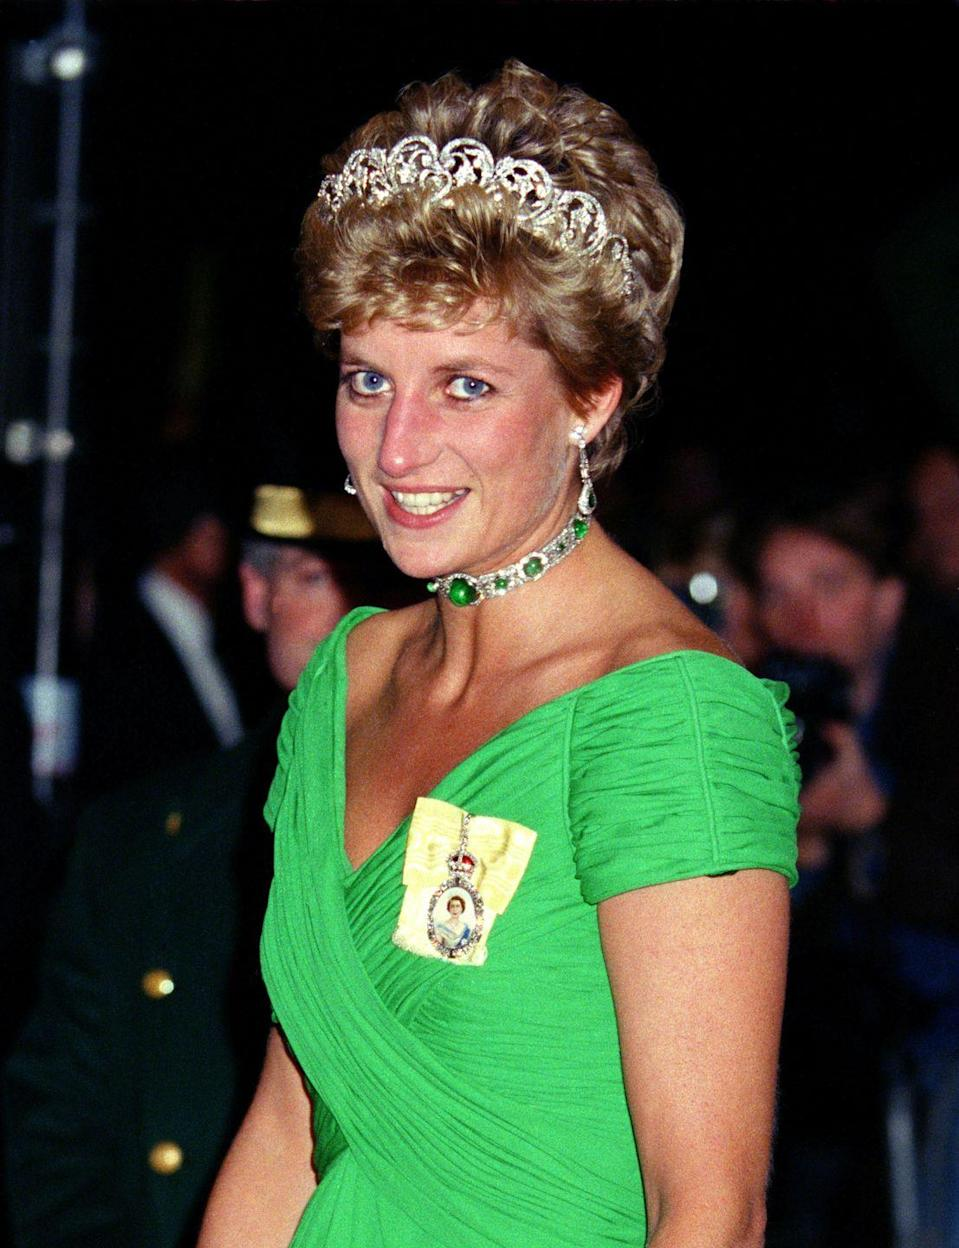 <p>For a banquet at London's Dorchester Hotel, Diana opted for green jewels to match her Kelly green dress. The Princess brought out Queen Mary's emerald and diamond choker necklace, alongside the Spencer tiara and her Royal Order. </p>